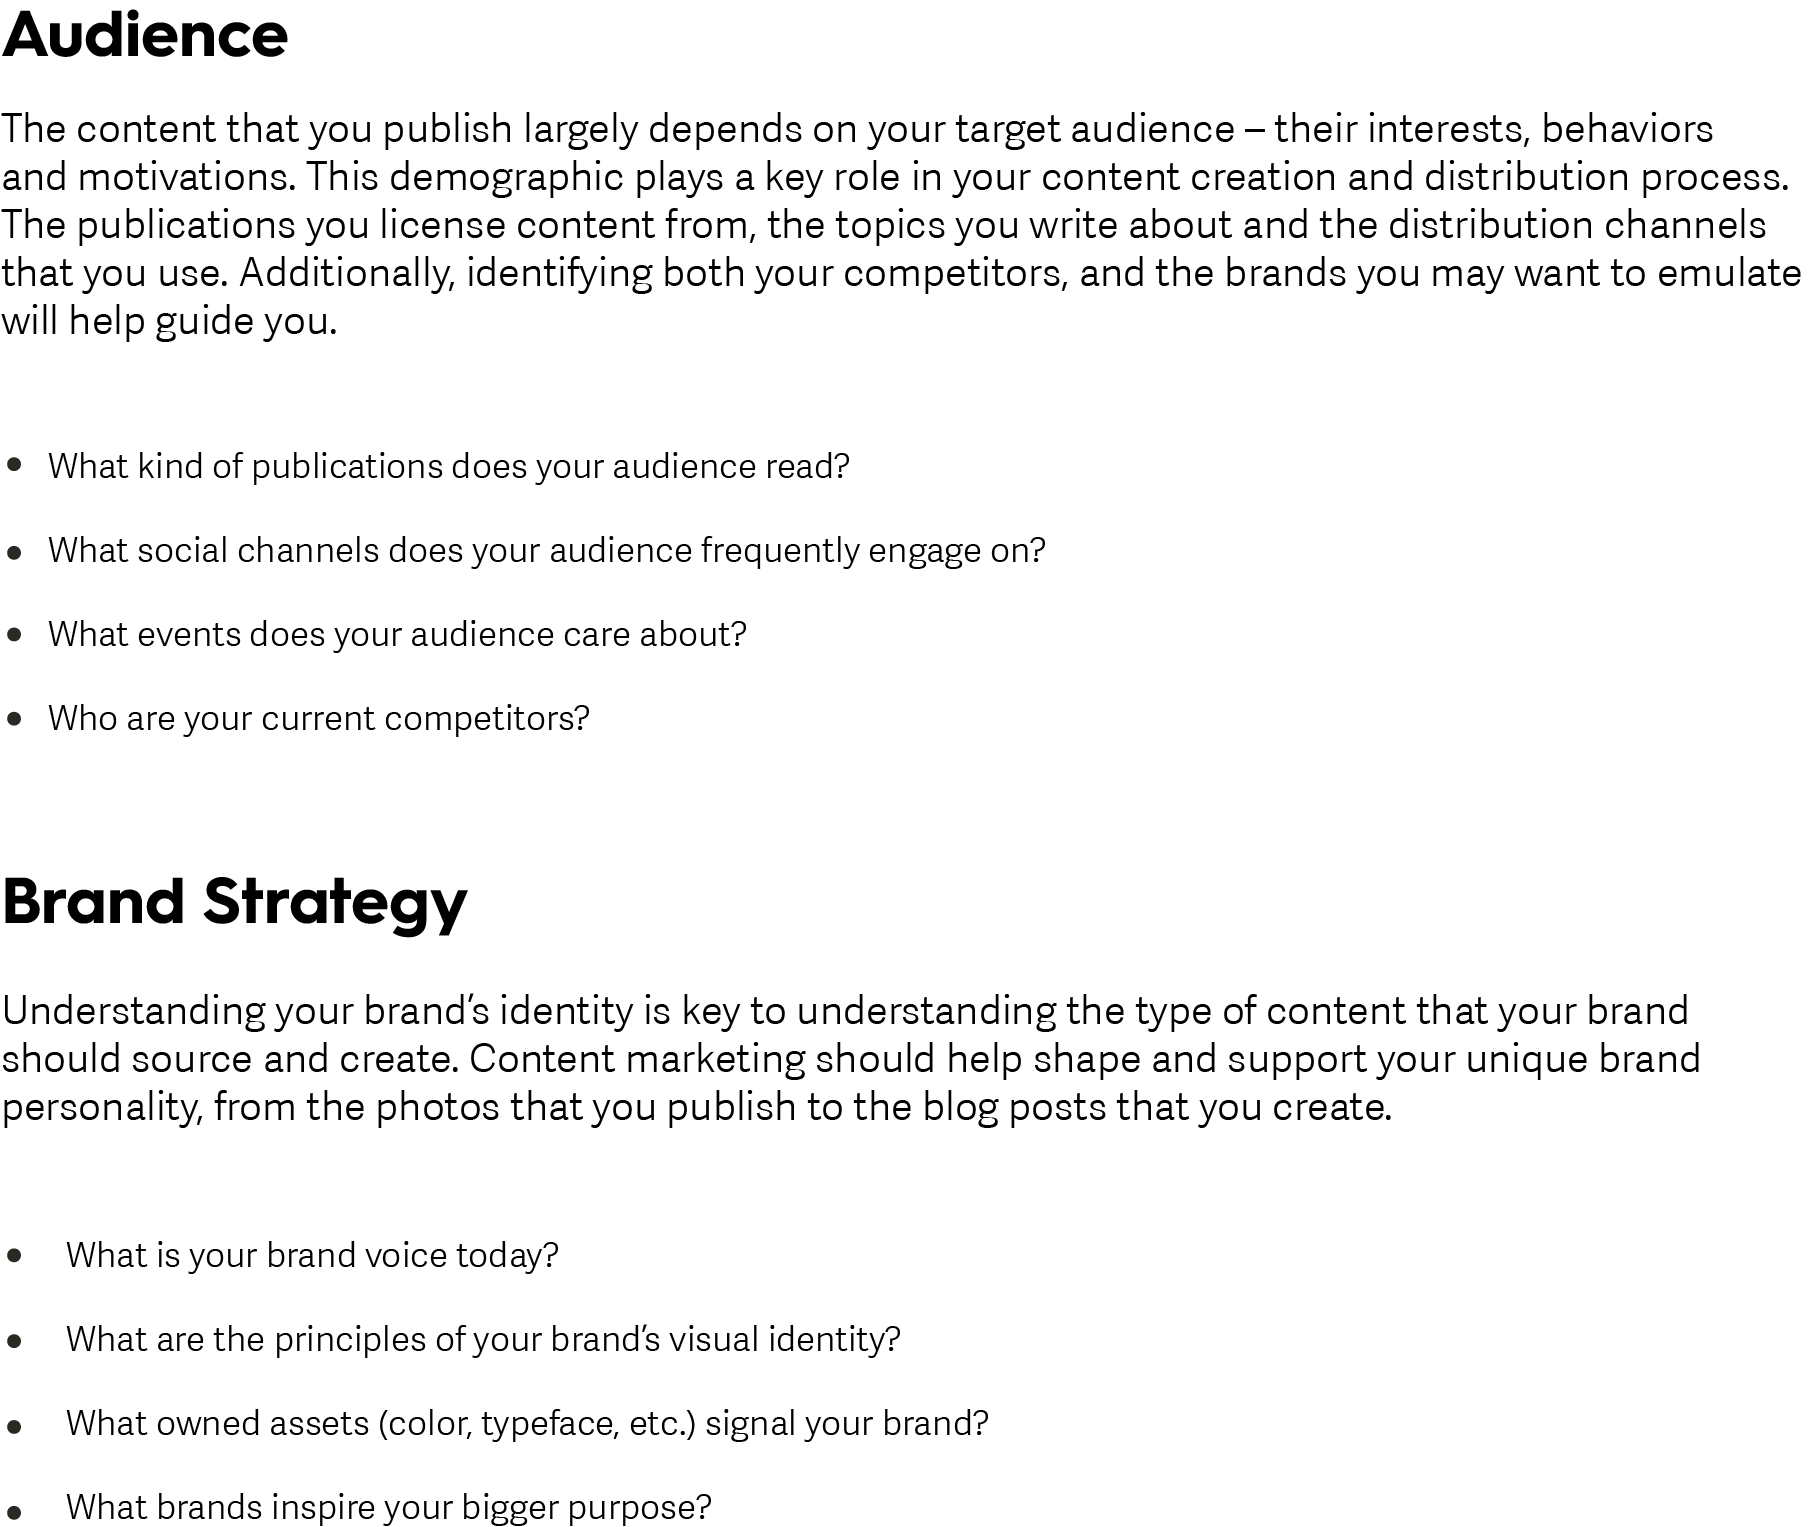 Audience and Brand Strategy Content Approach.png